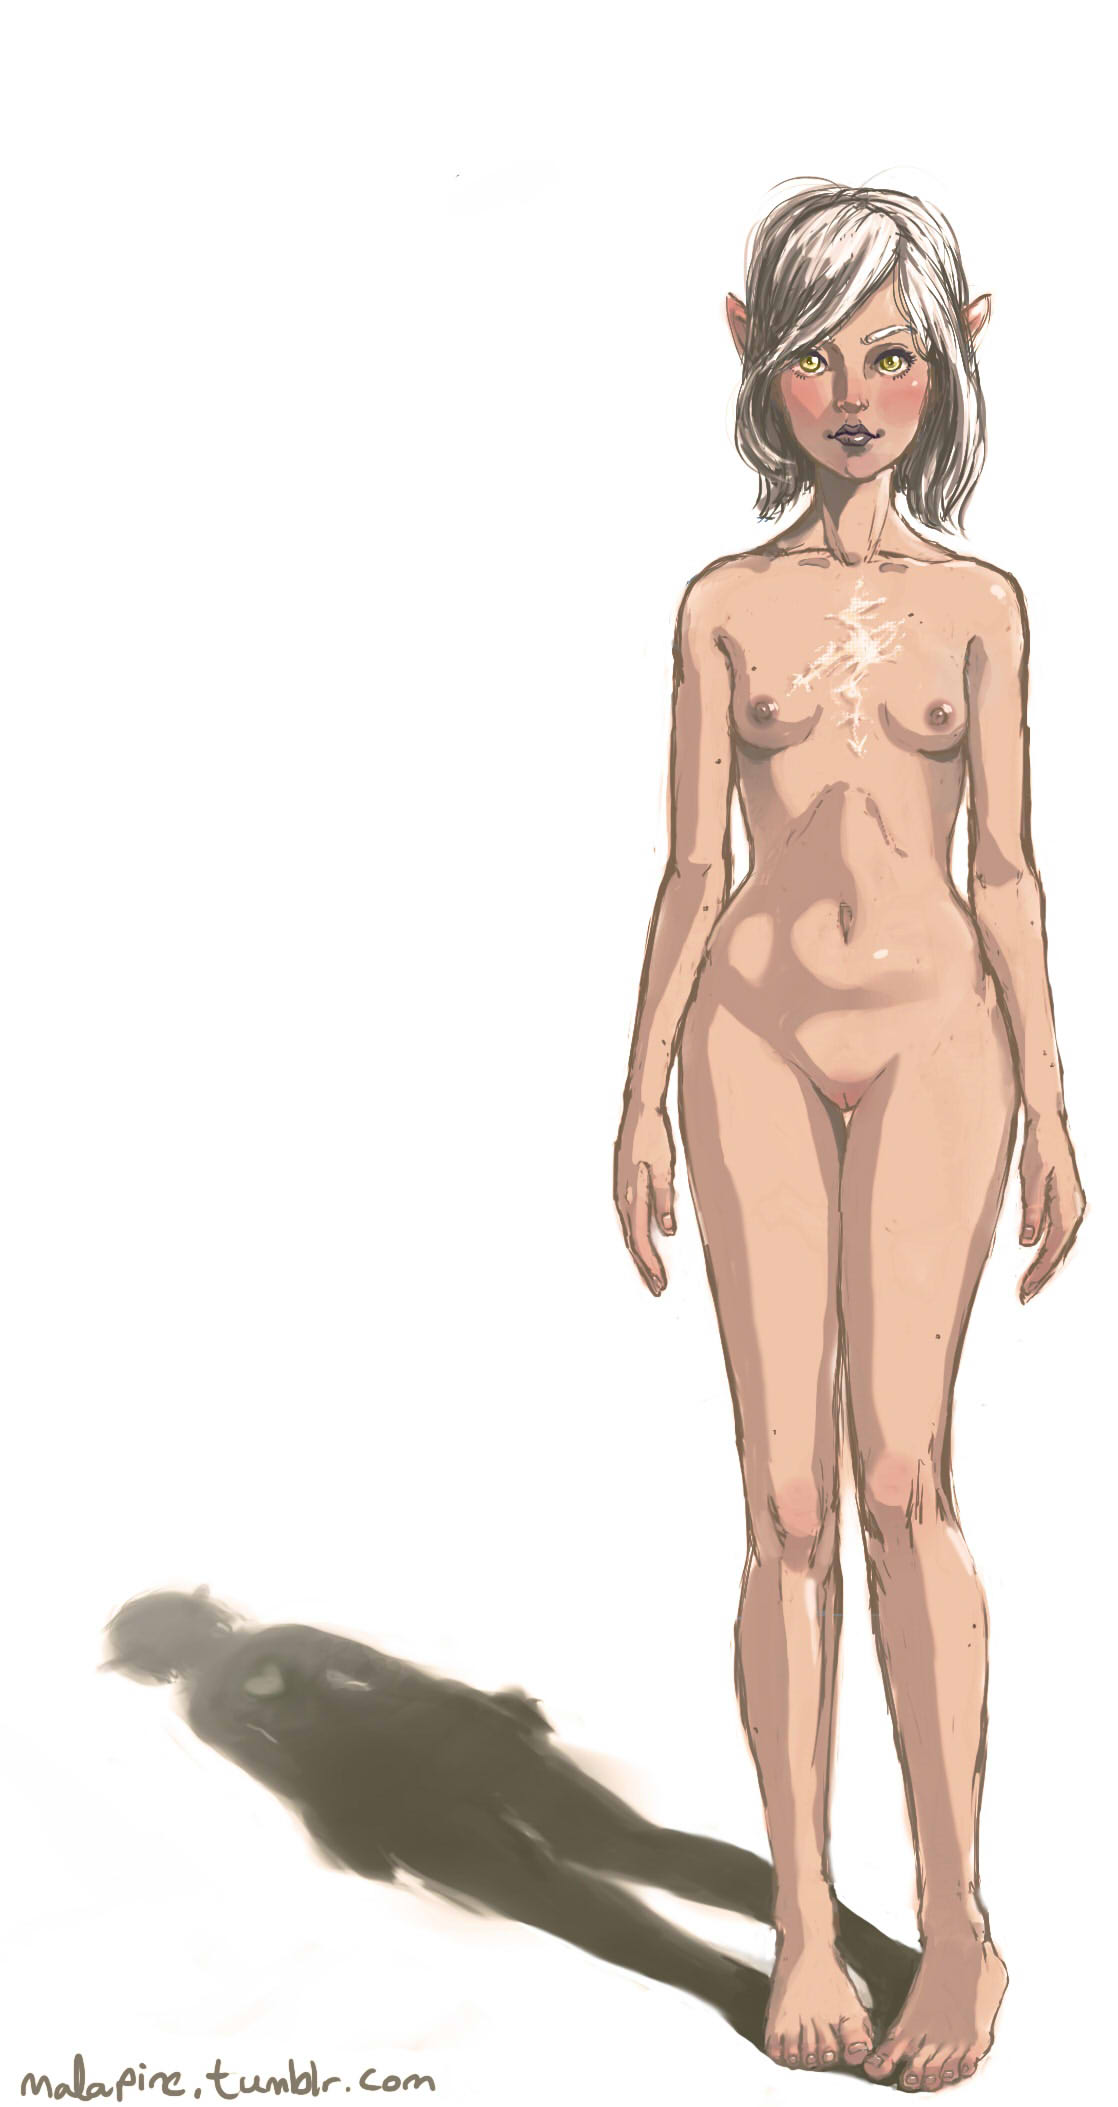 bigger breasts mod dogma dragon's Images of velma from scooby doo